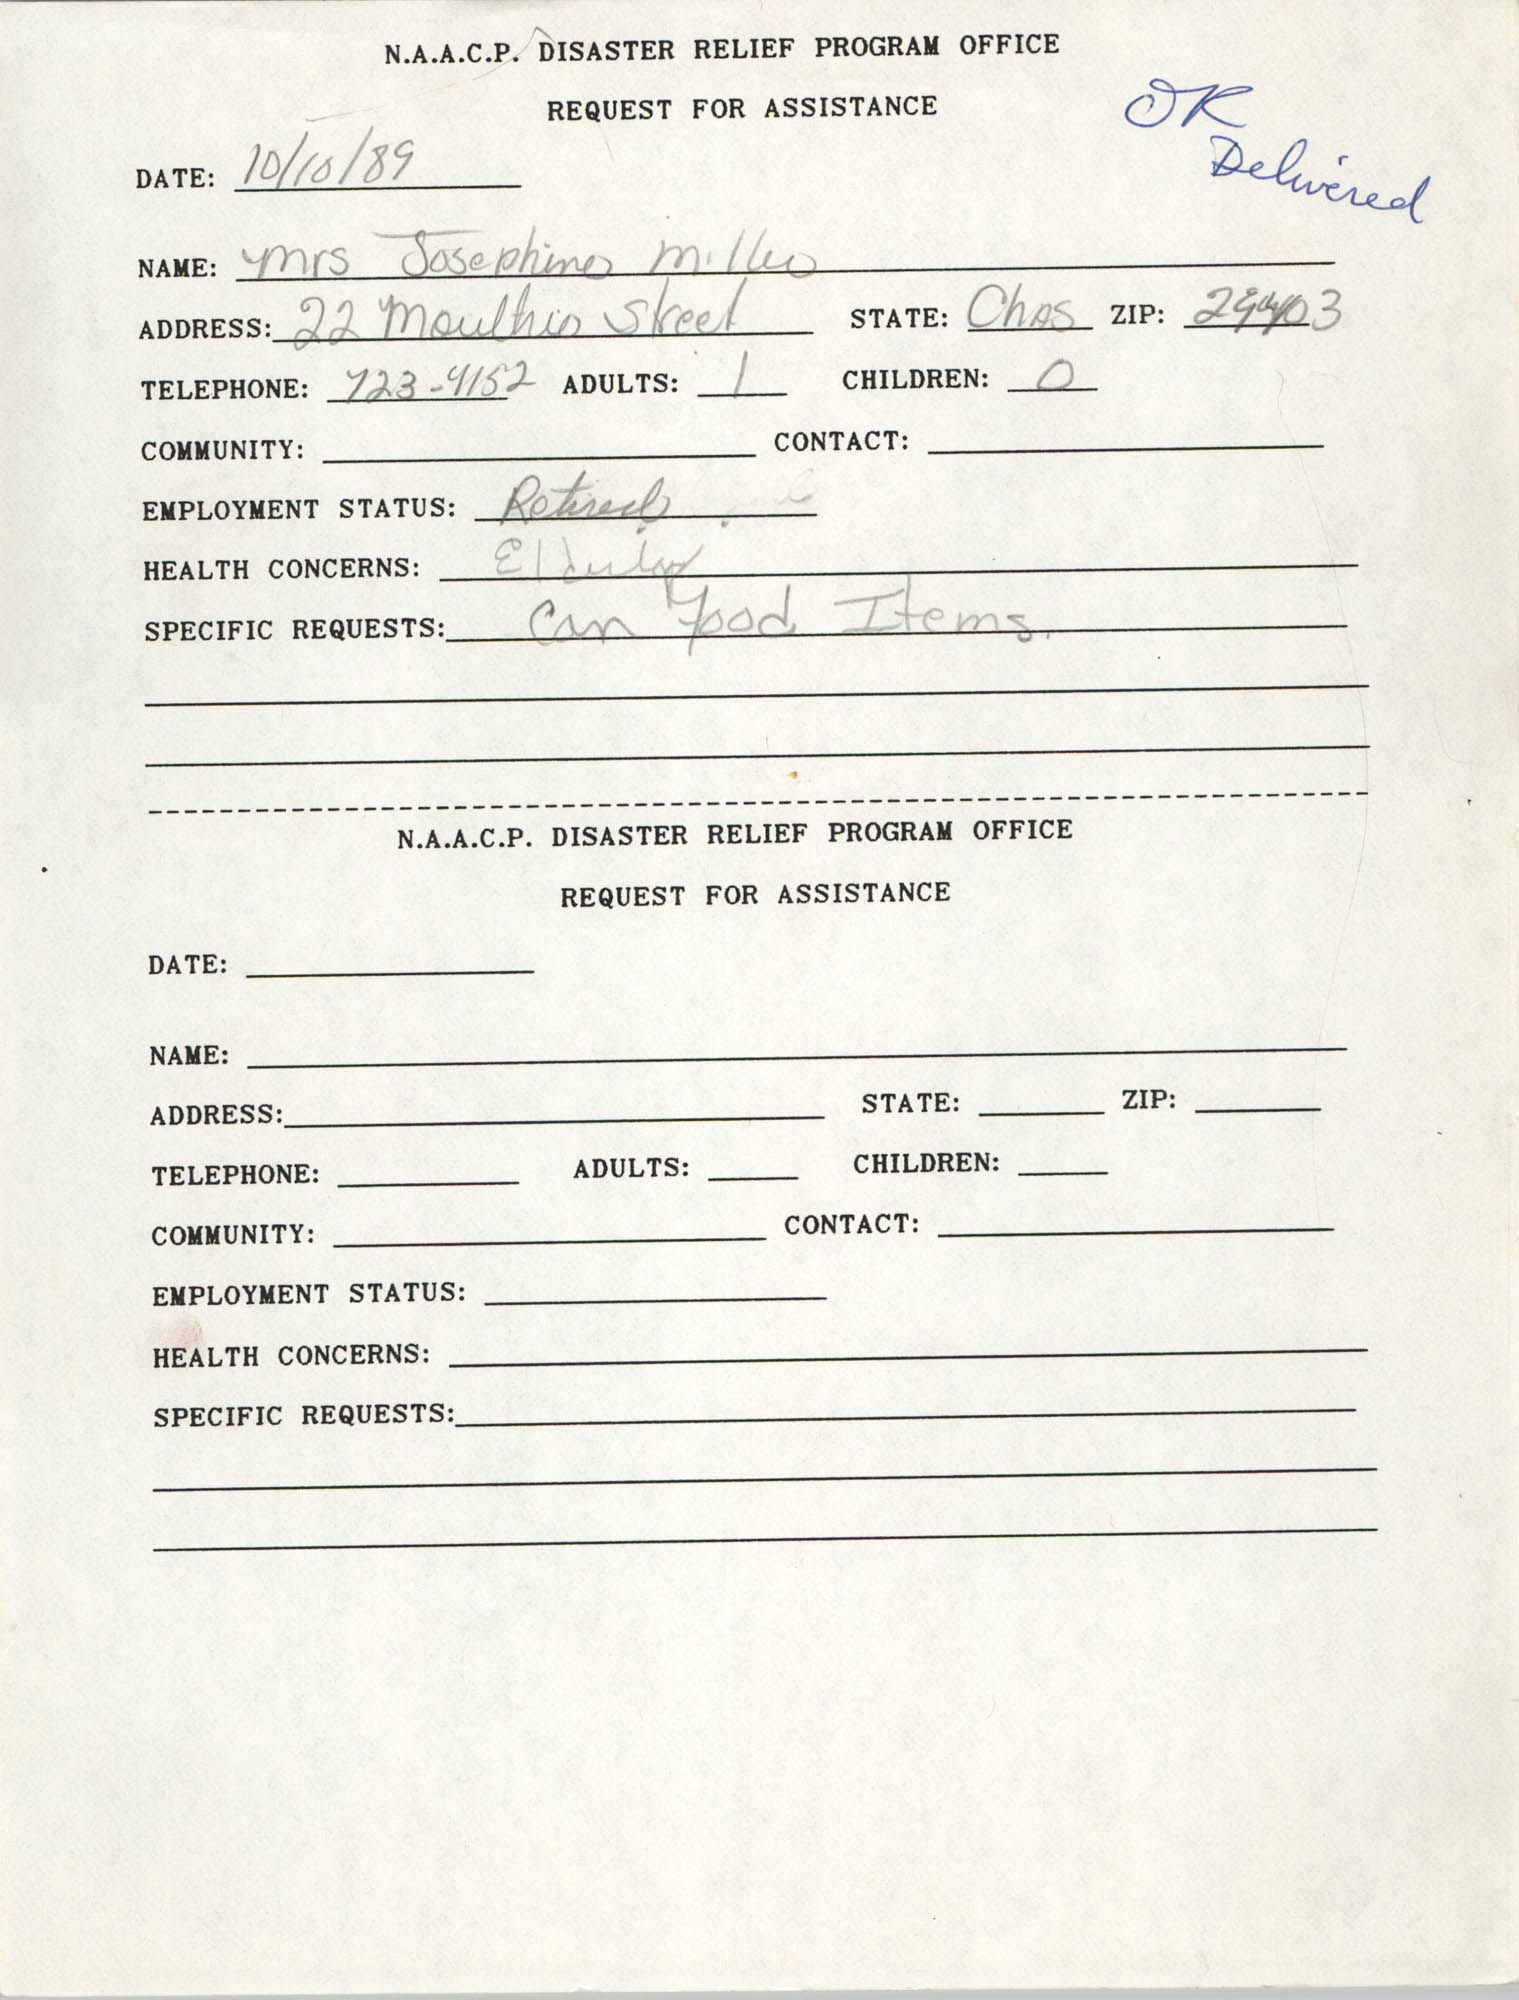 NAACP Disaster Relief Program Office, Hurricane Huge Requests for Assistance, 1989, Page 20